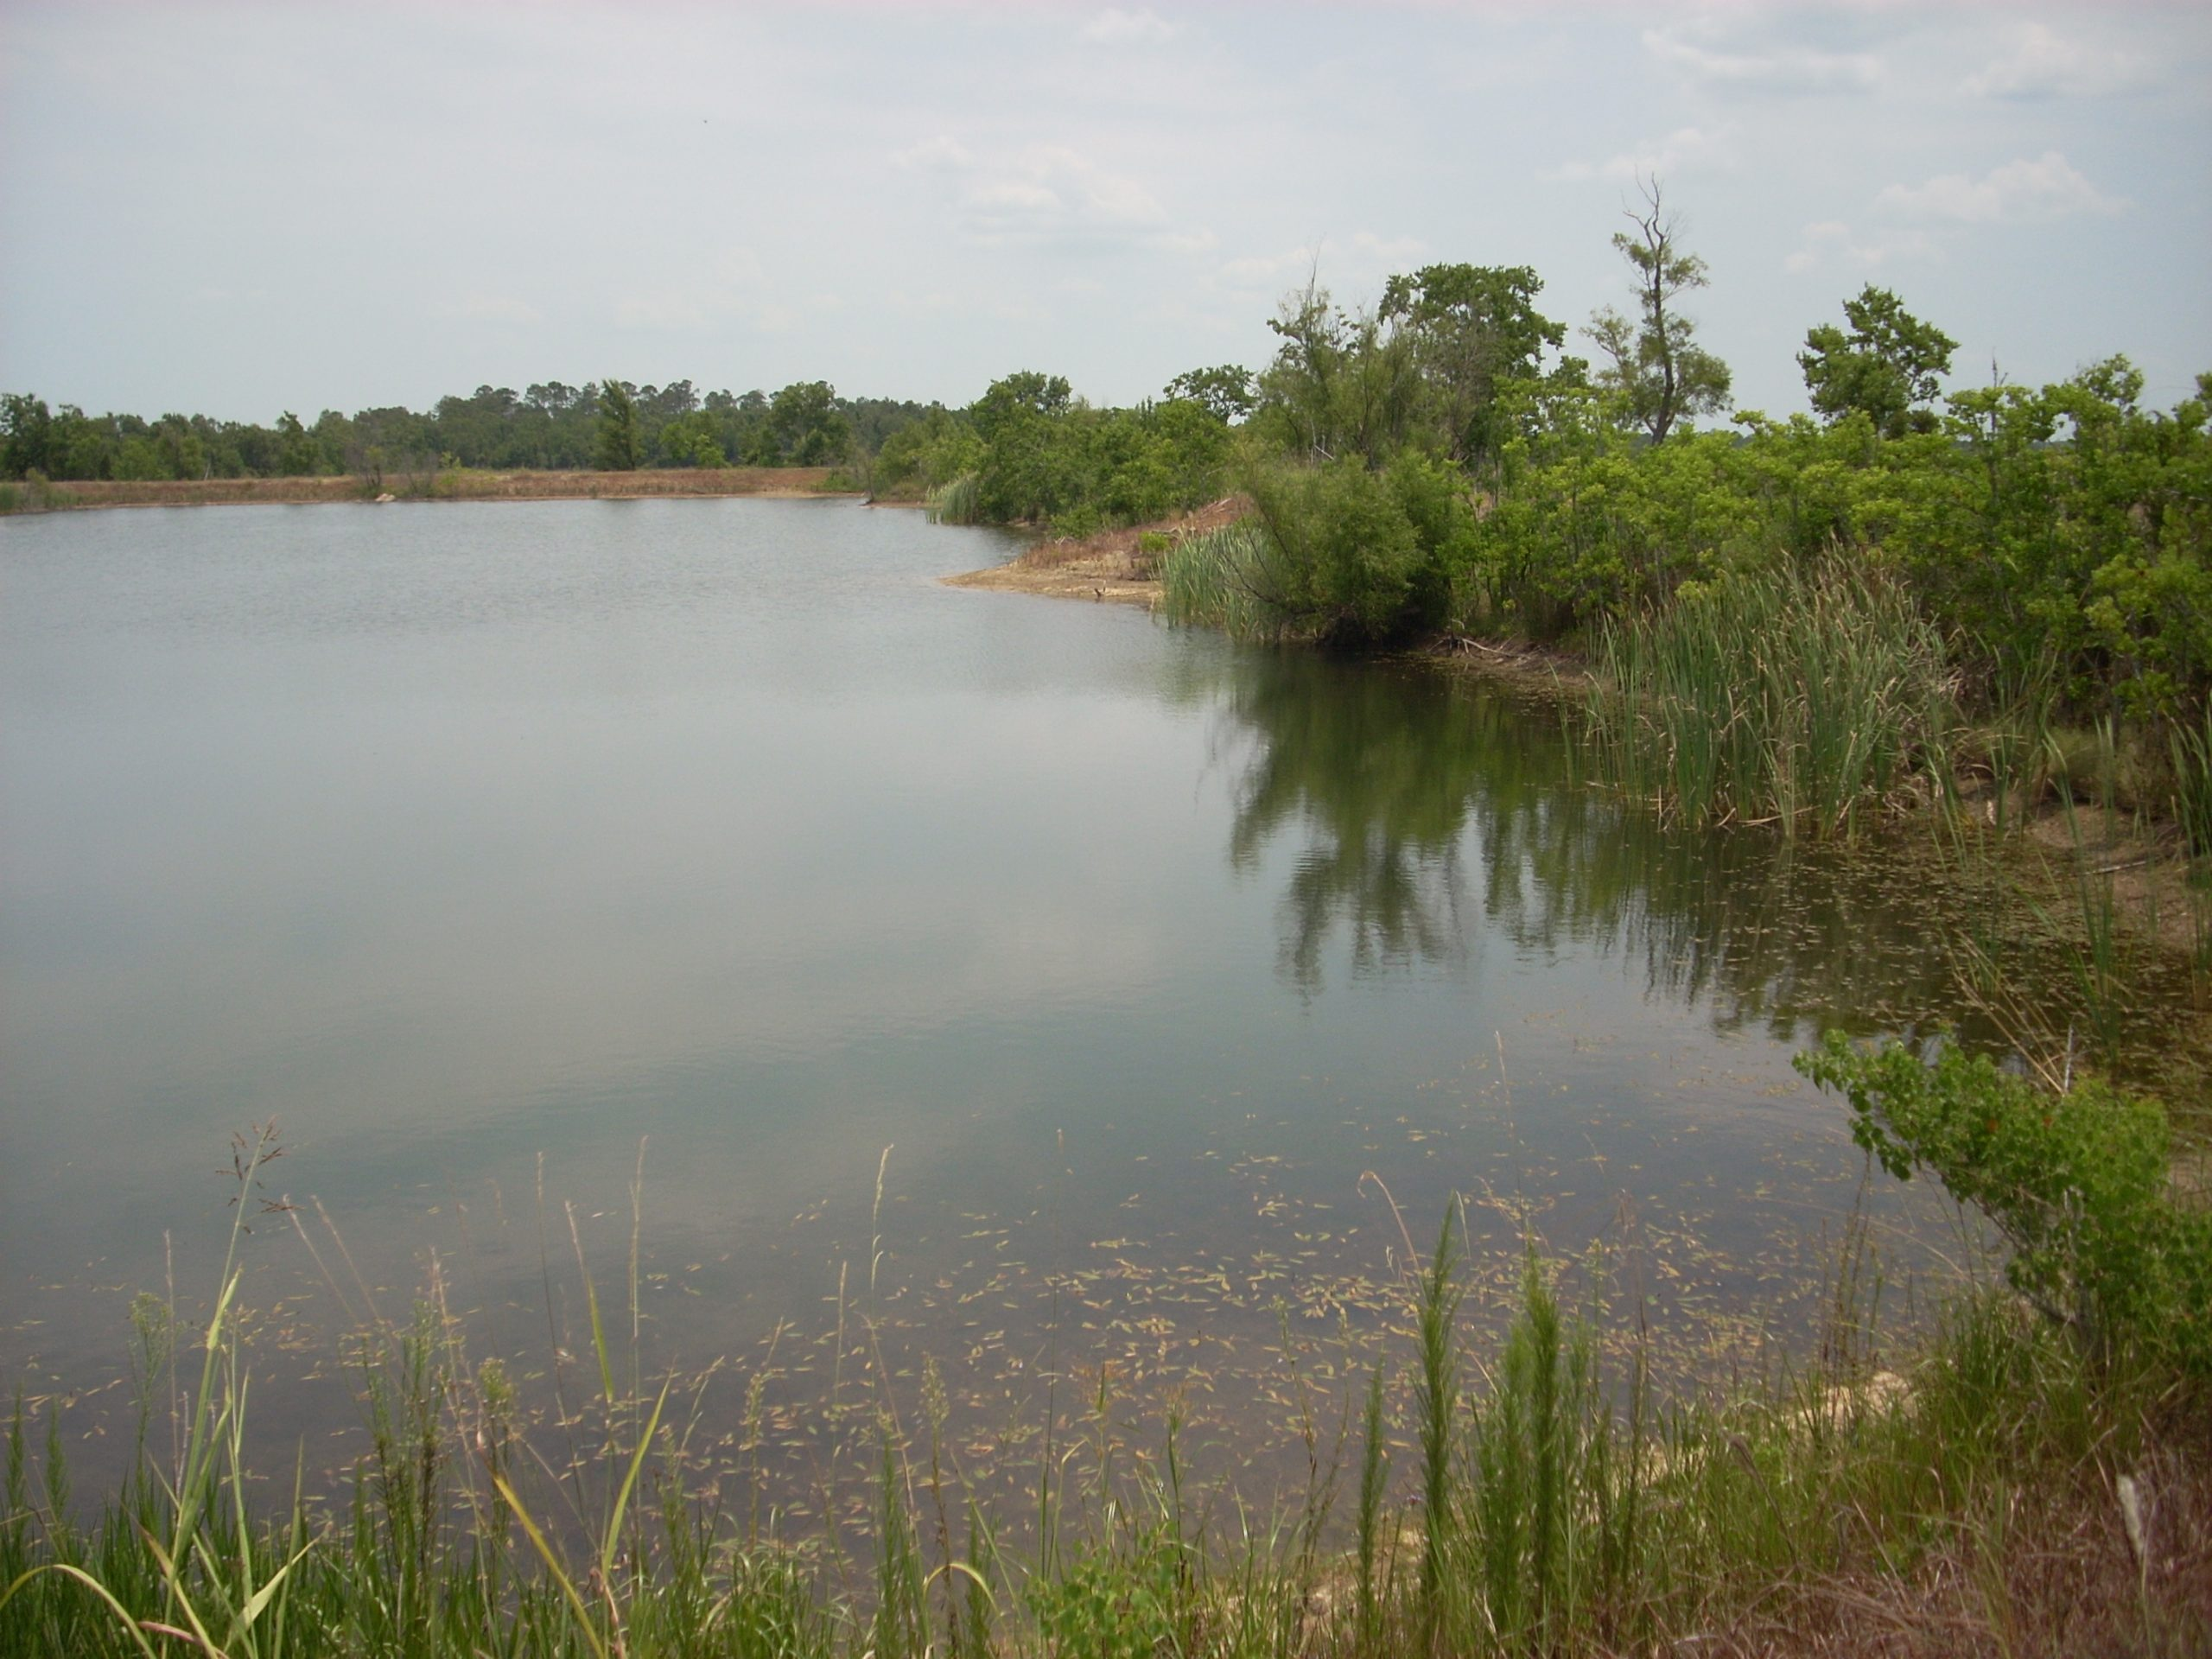 How is a site selected for the creation of a mitigation bank?